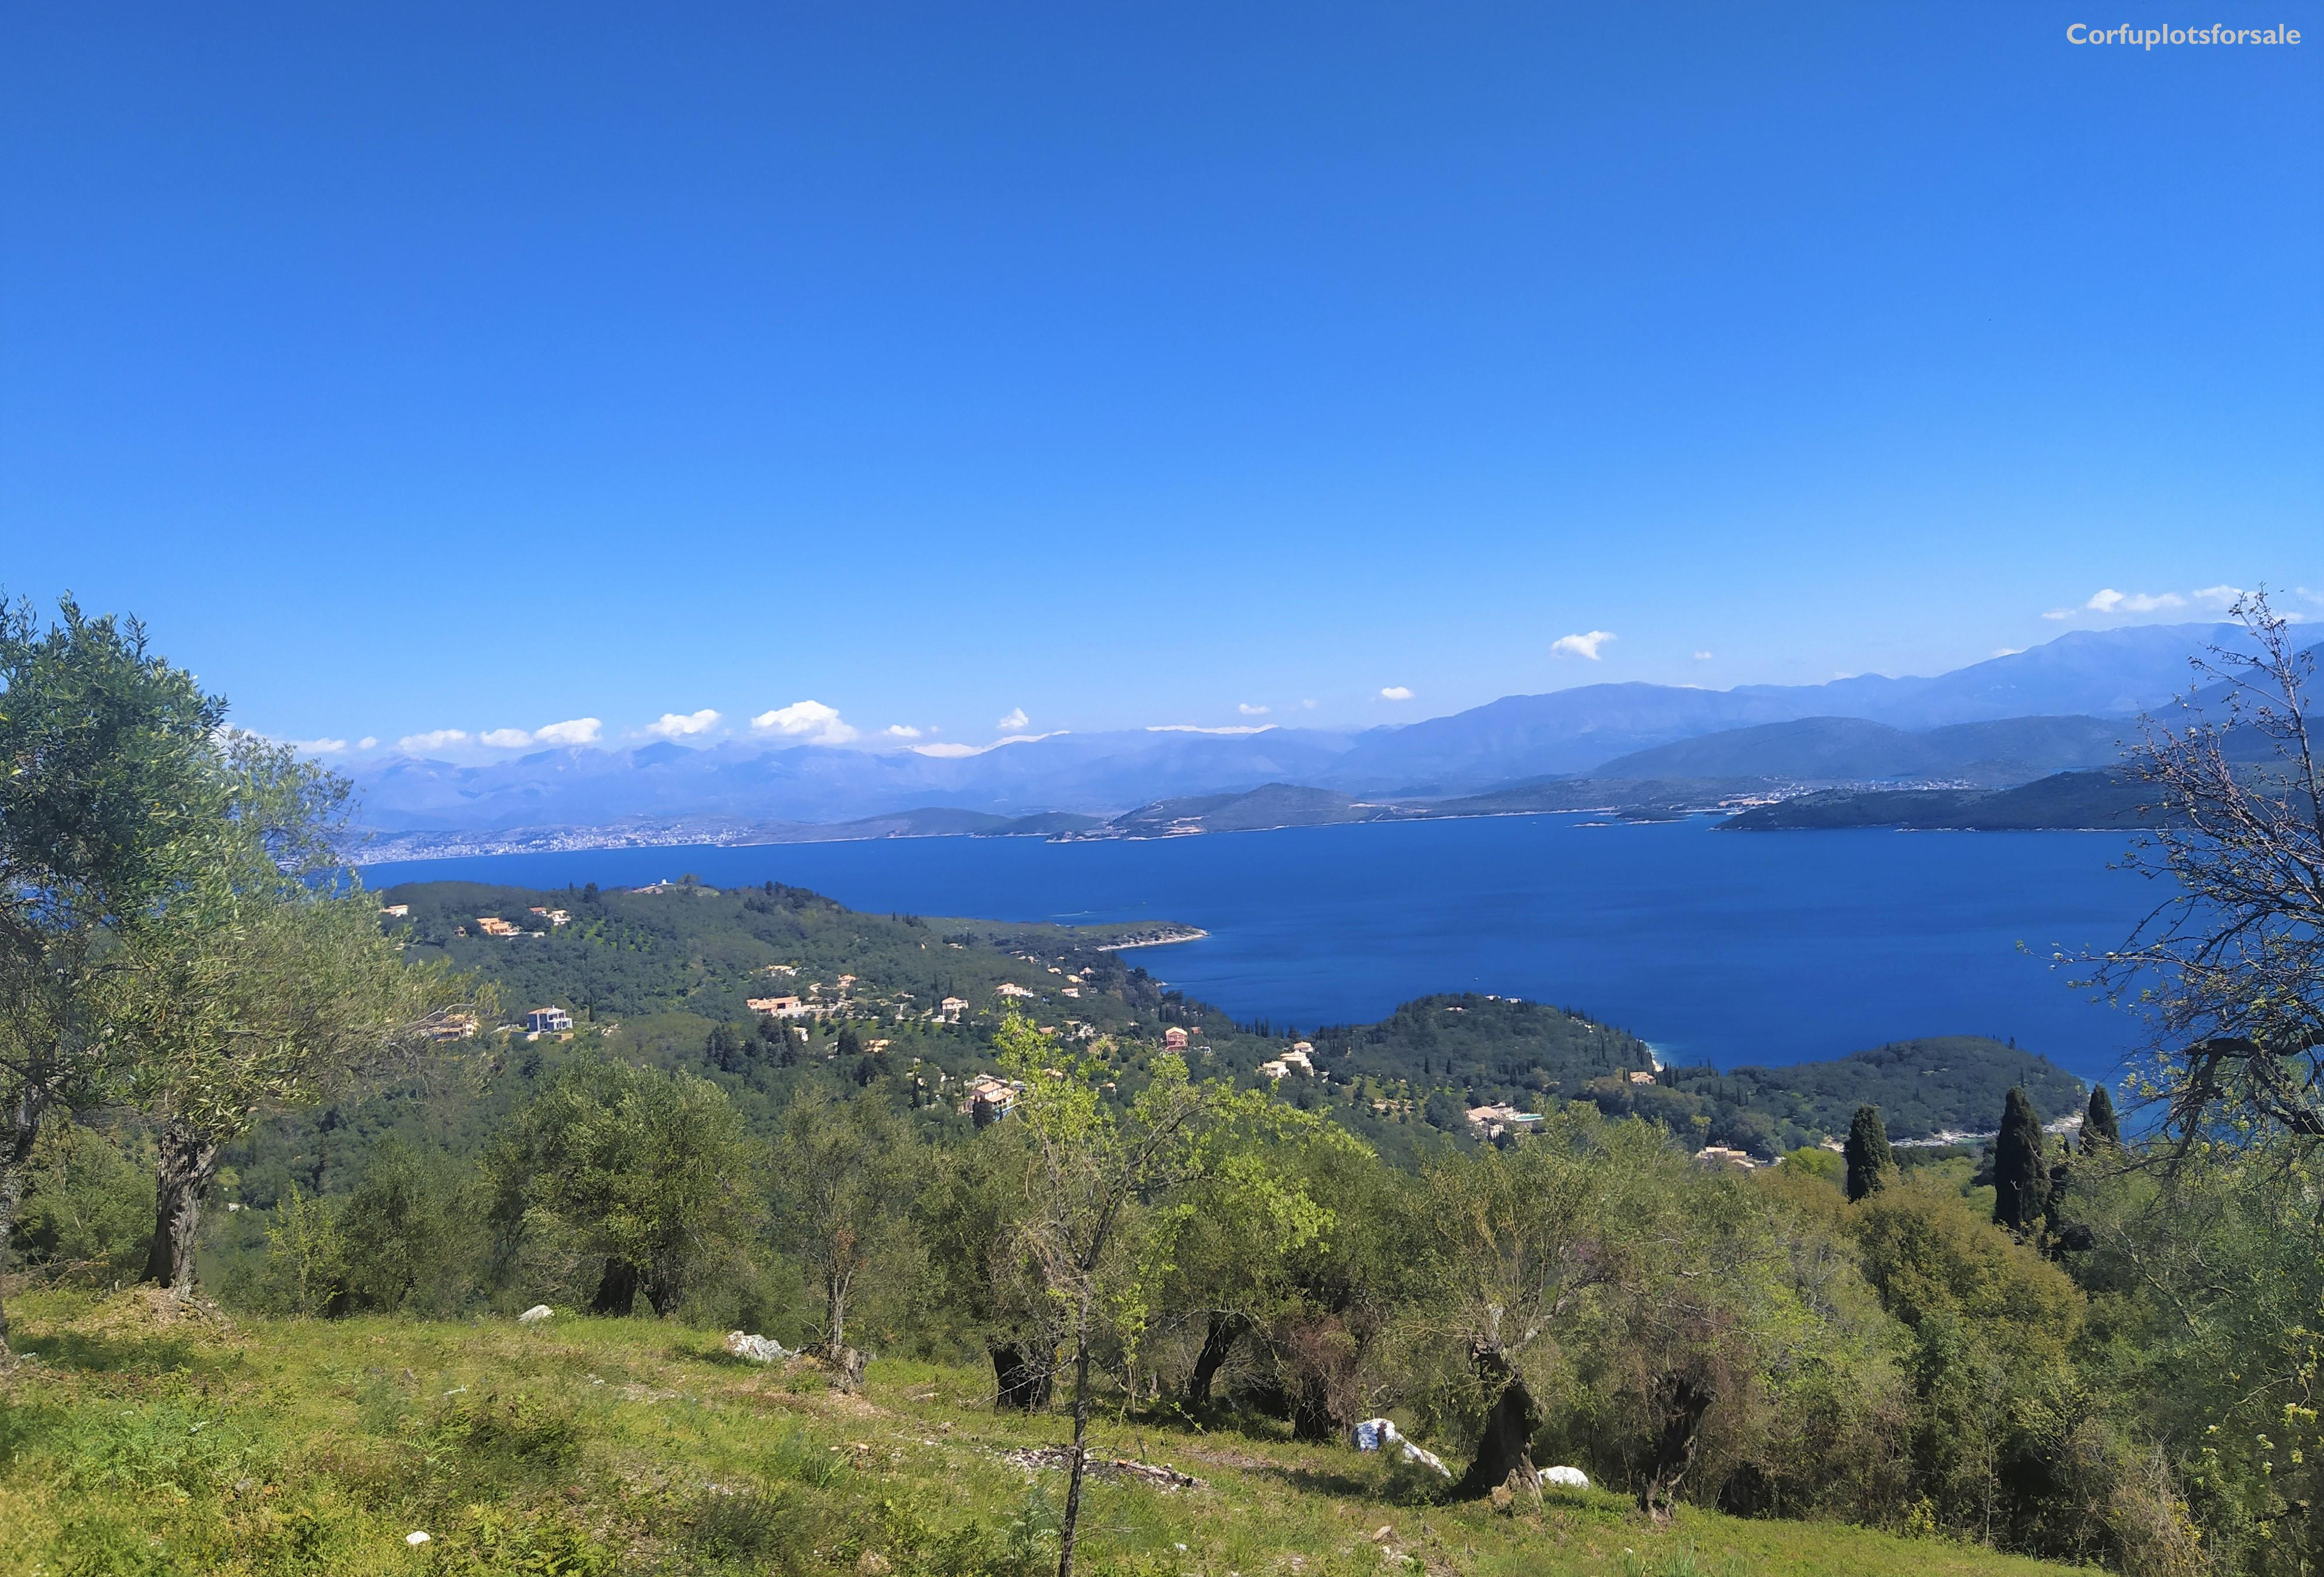 Superb view to the Ionian sea